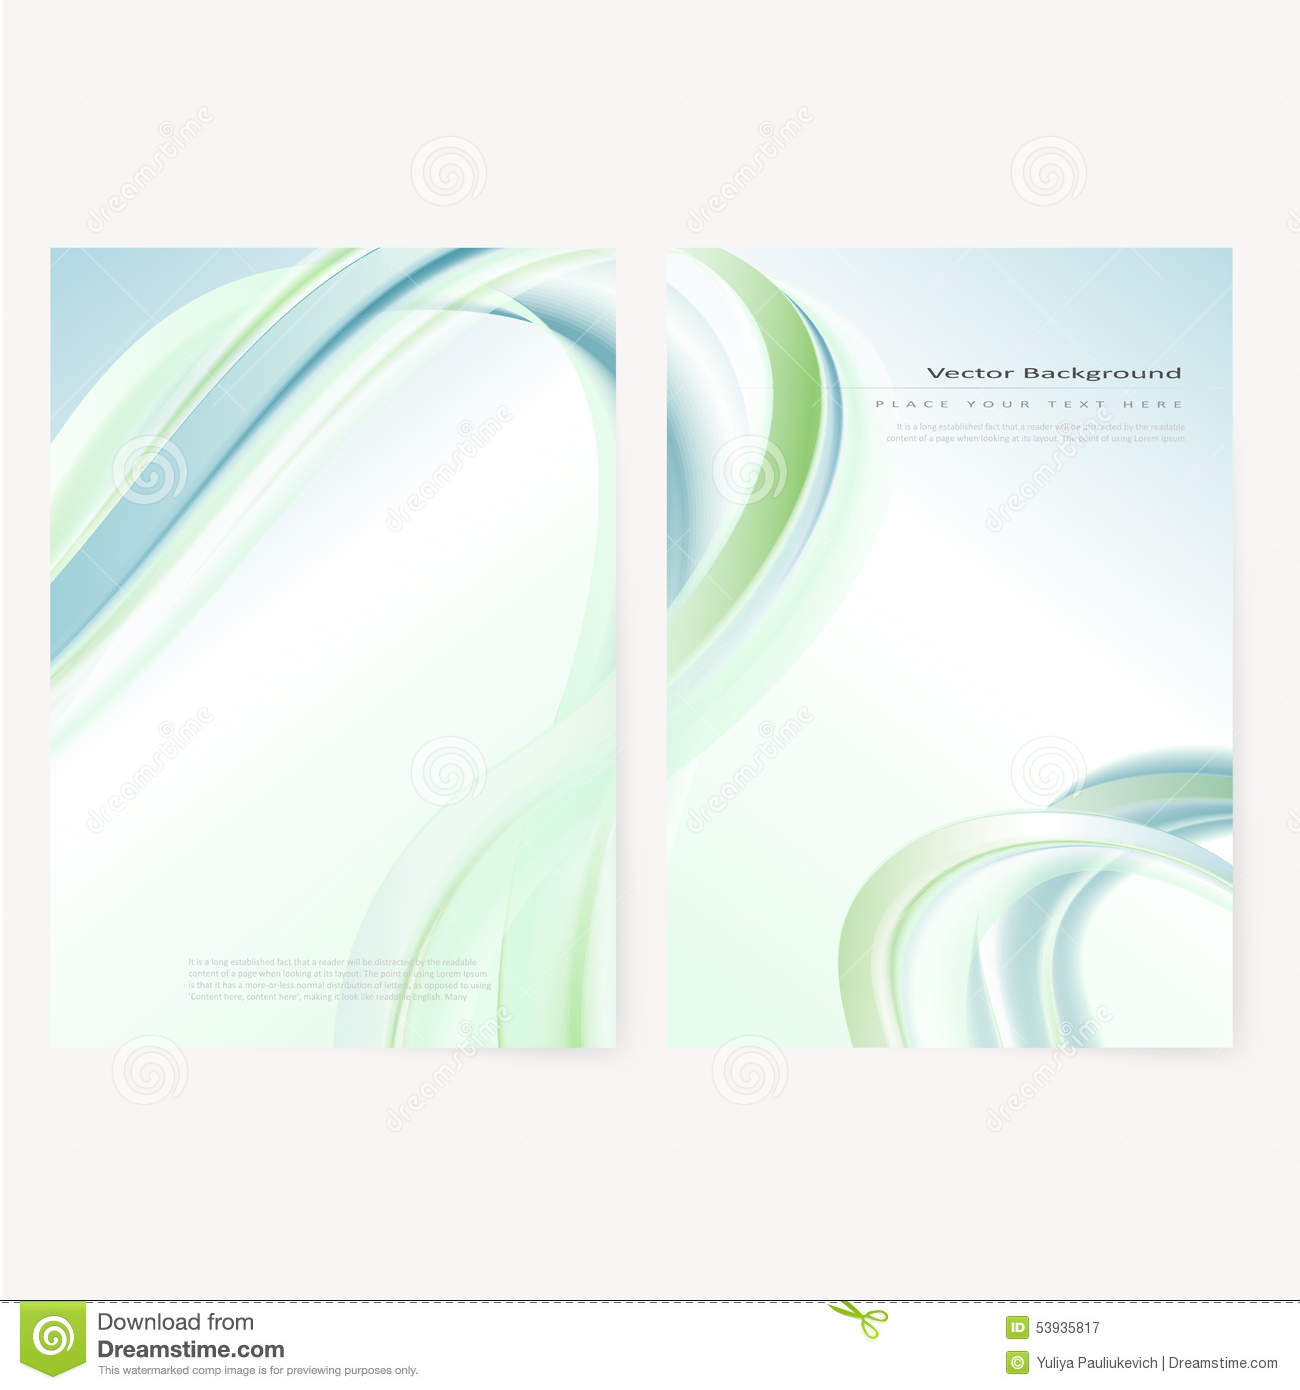 Royalty Free Vector. Download Vector Business Brochure, Flyer Template ...